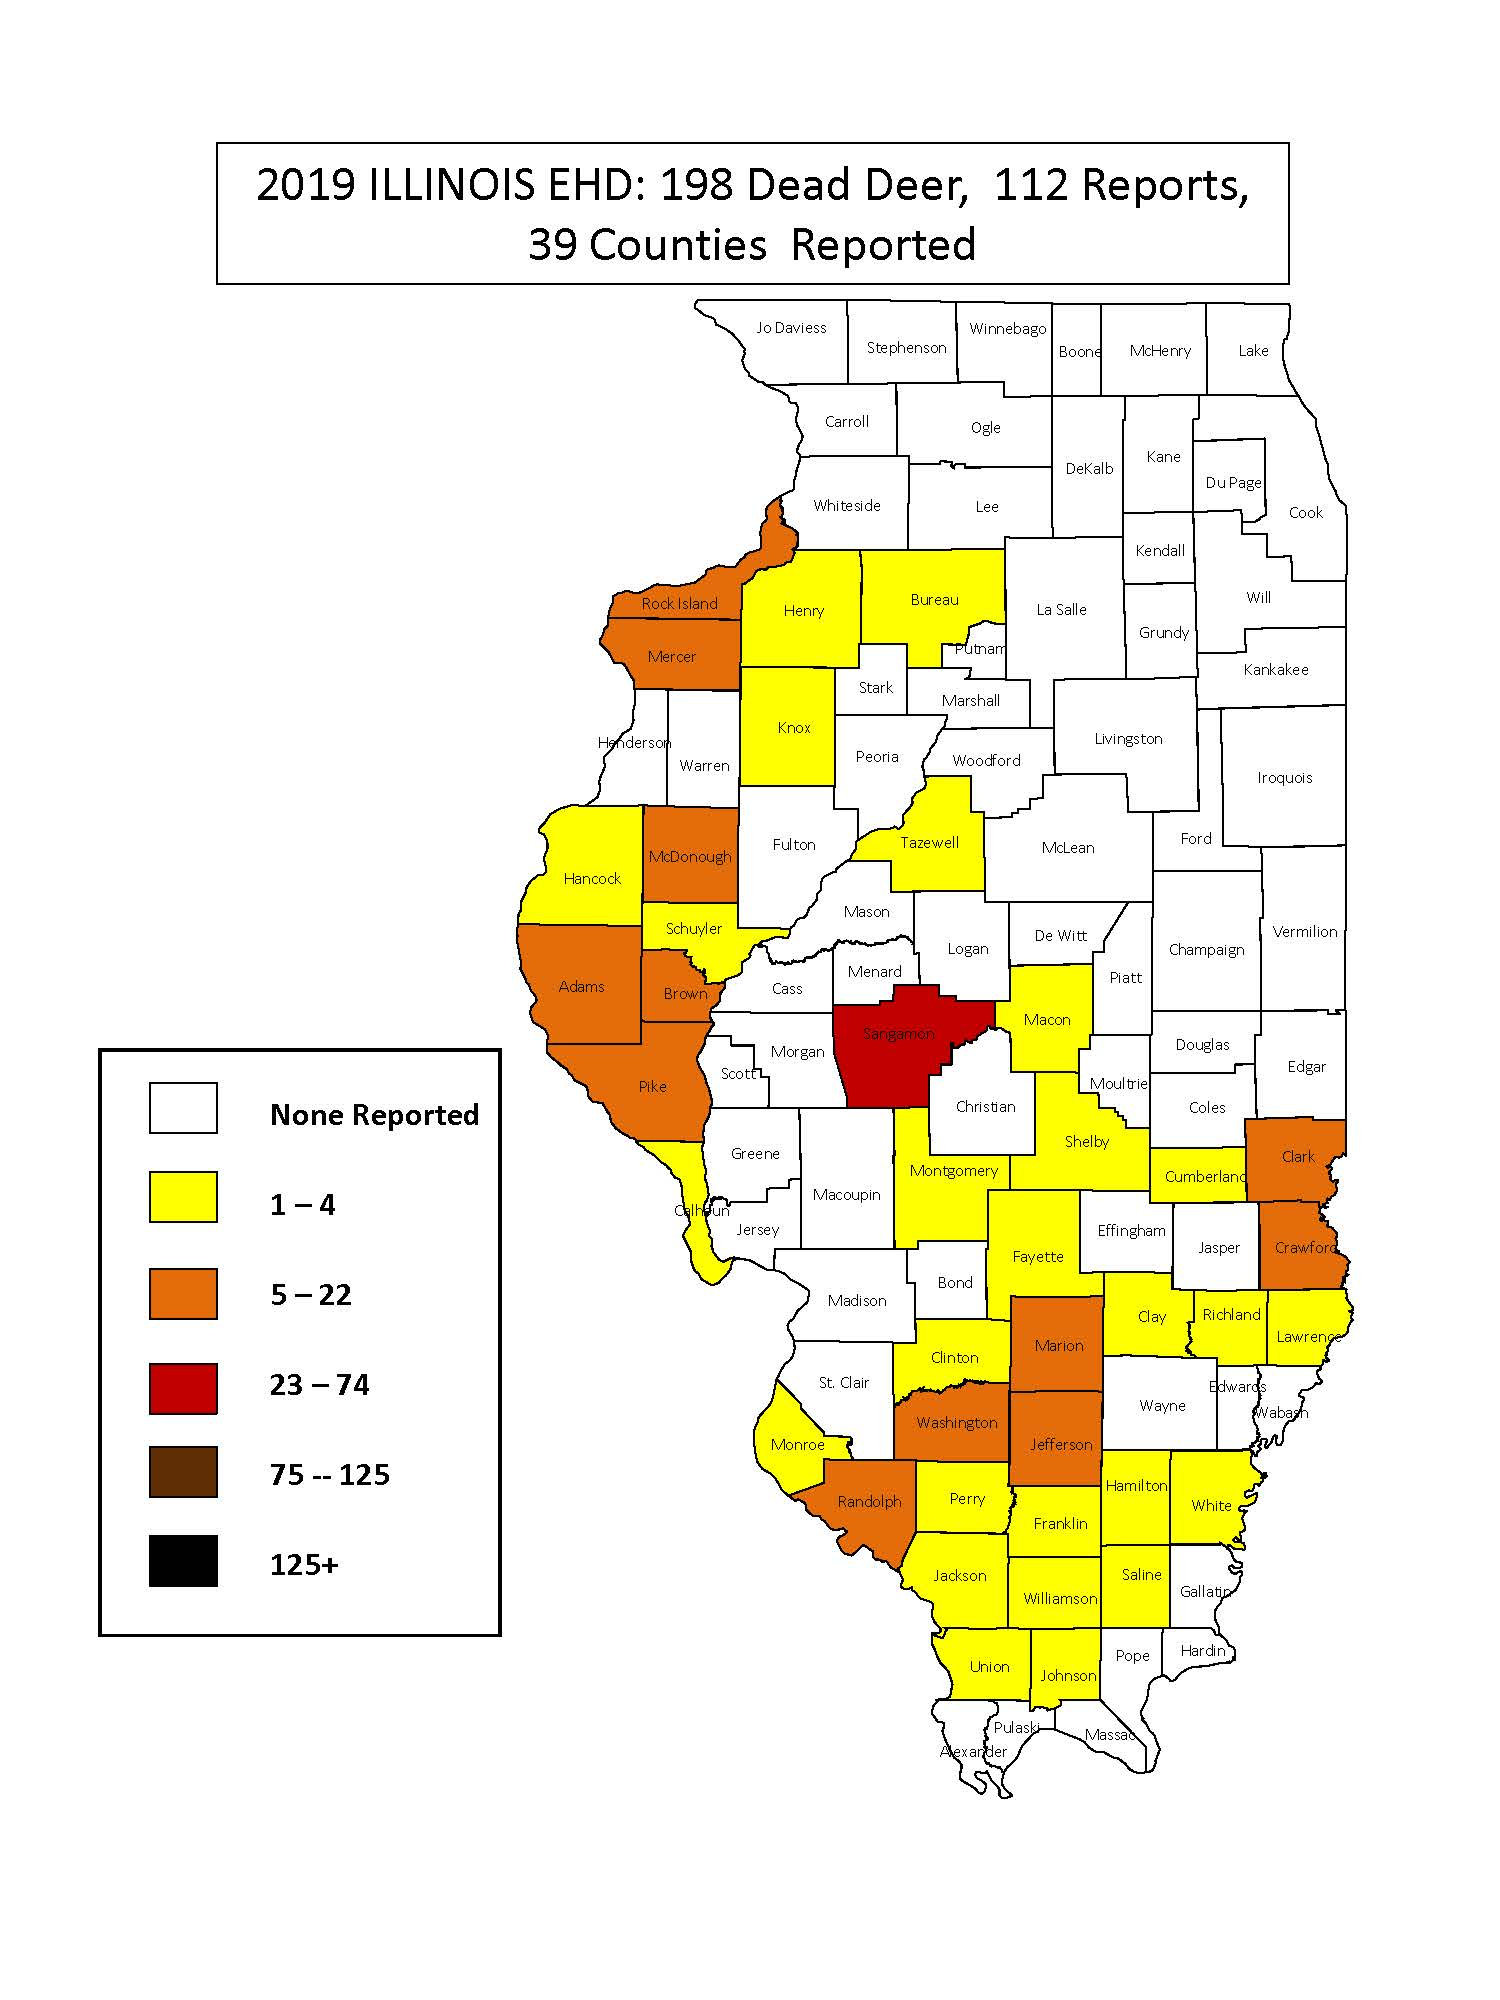 A map of Illinois counties colored in yellow or orange to indicate which counties have reports of Epizootic Hemorrhagic Disease in deer.